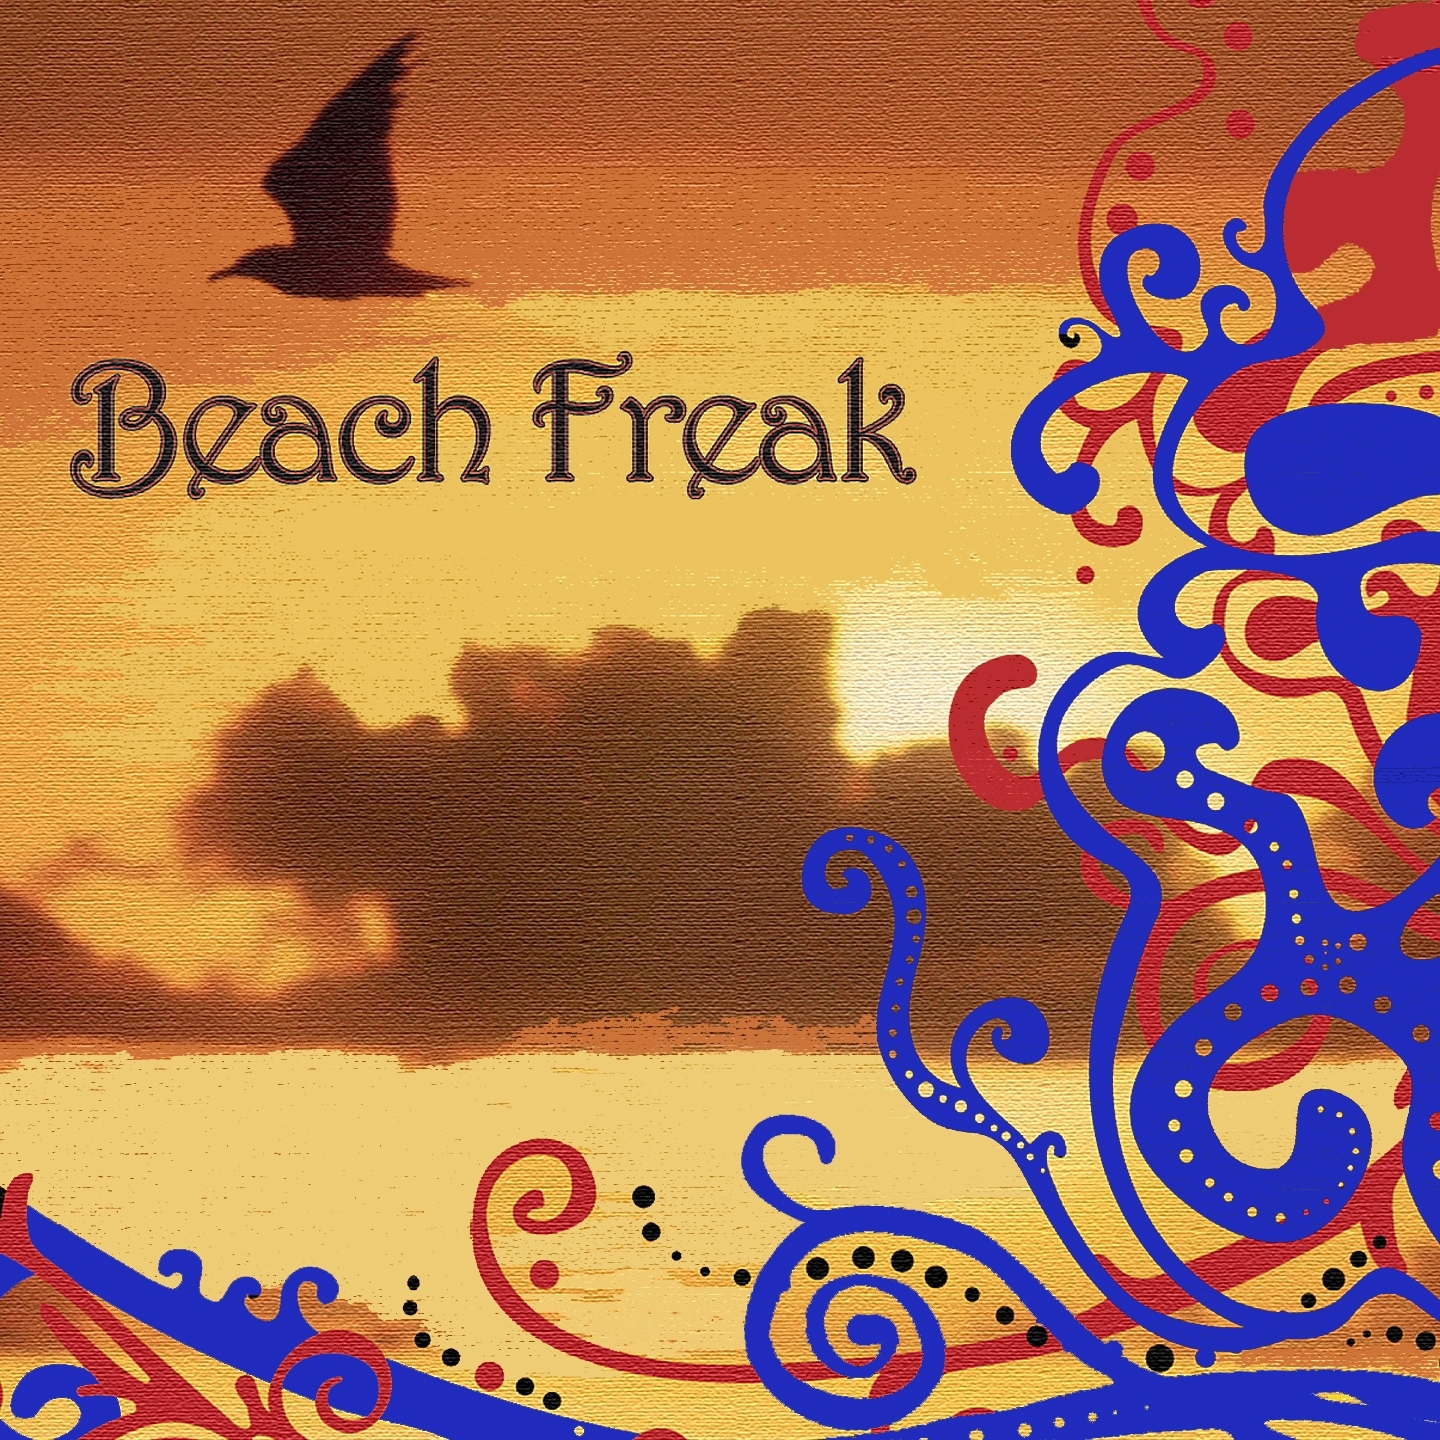 Beach Freak